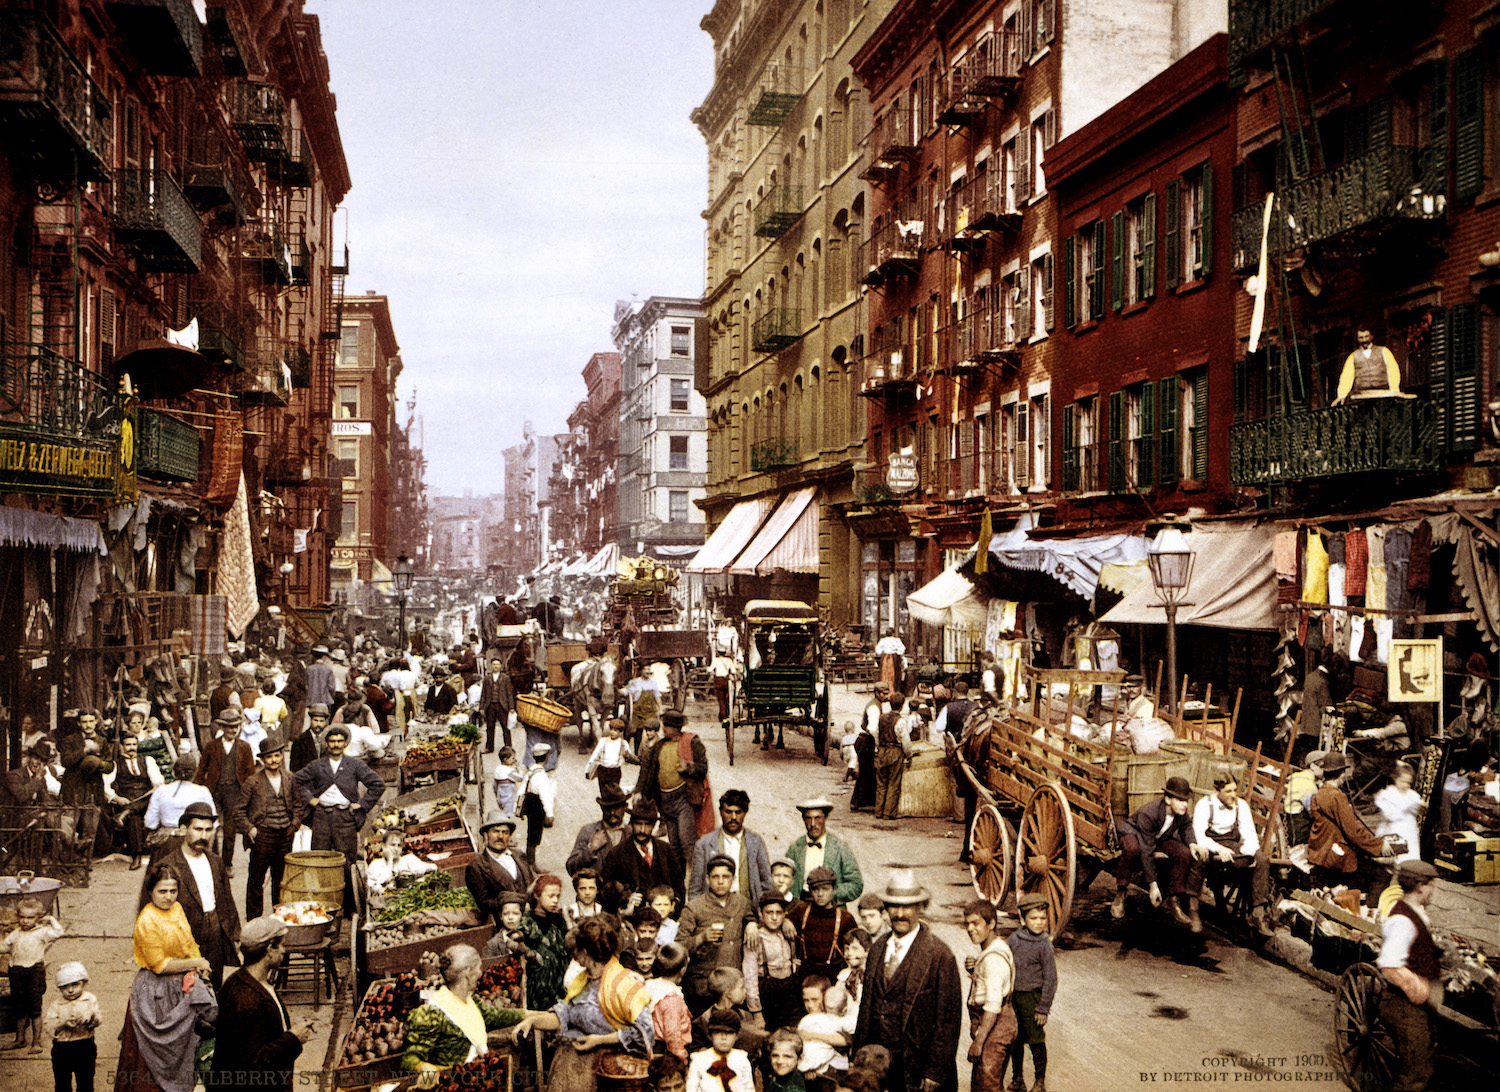 New York war lange Zeit der Silberstreifen am Horizont für Flüchtlinge aus aller Welt. Noch heute spürt man hier die multikulturellen Einflüsse. Foto: Mulberry Street NYC, Detroit Publishing Co., Library of Congress, gemeinfrei.